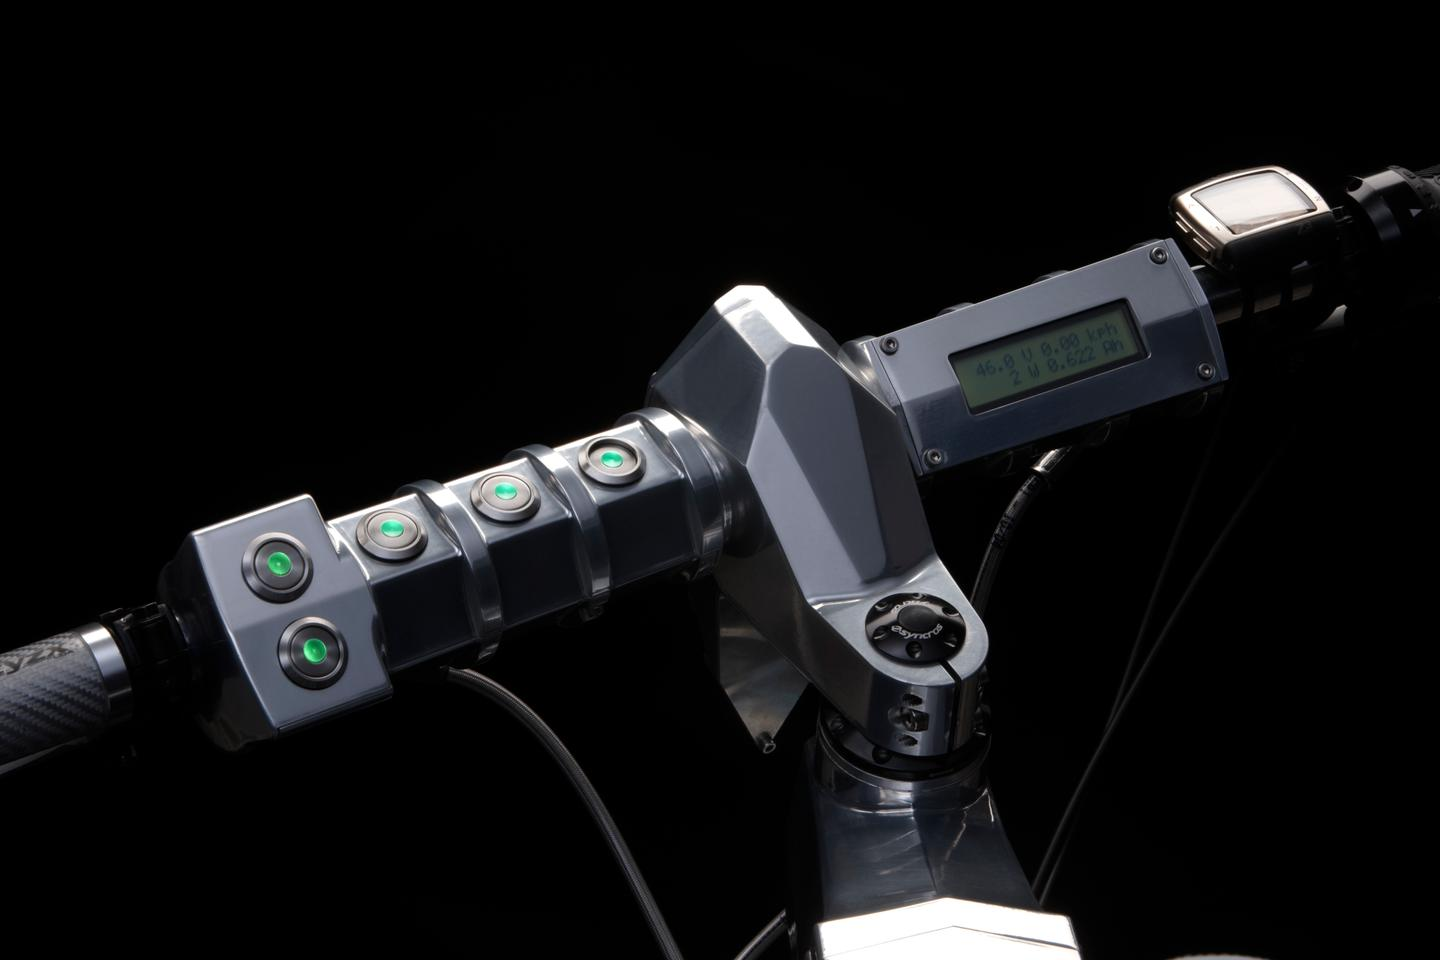 The Beast's cast and CNC-machined handlebar and stem, with ESI grips